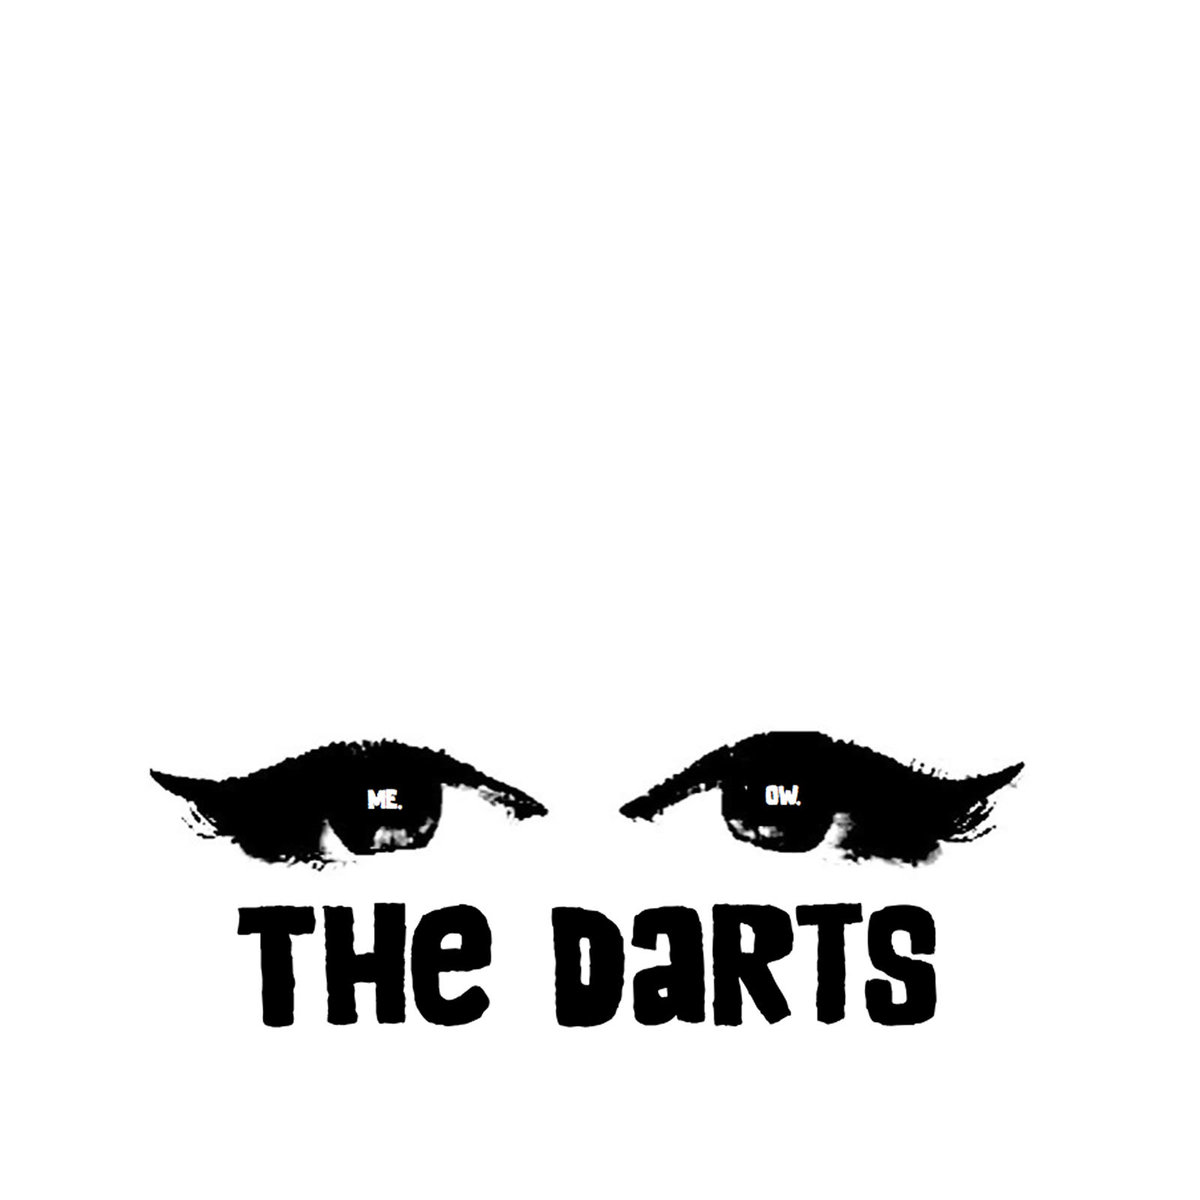 ac70444c2be396 The Darts - Me.Ow